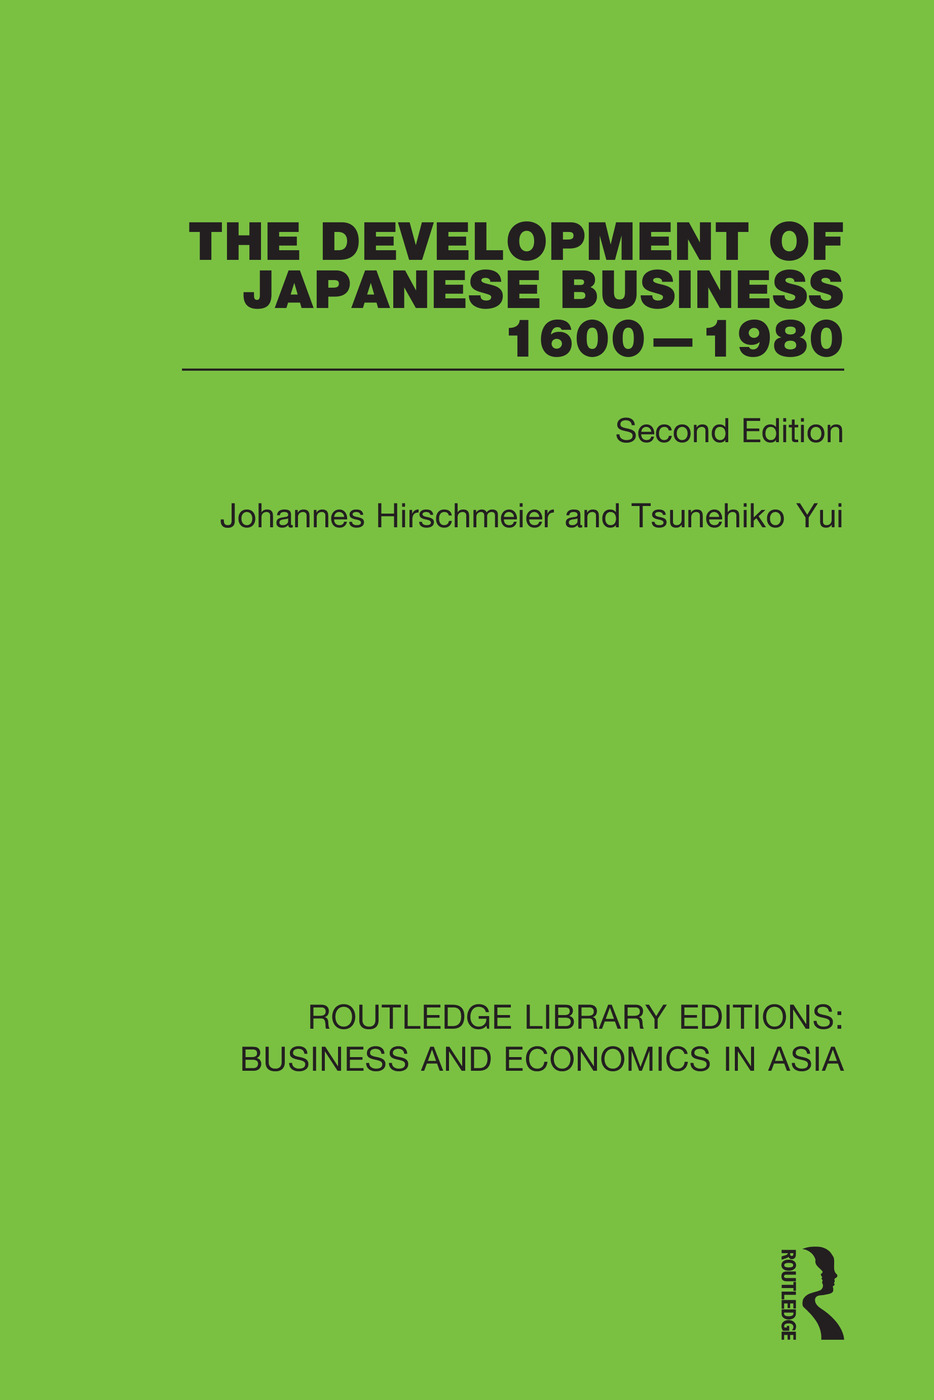 The Development of Japanese Business, 1600-1980: Second Edition book cover